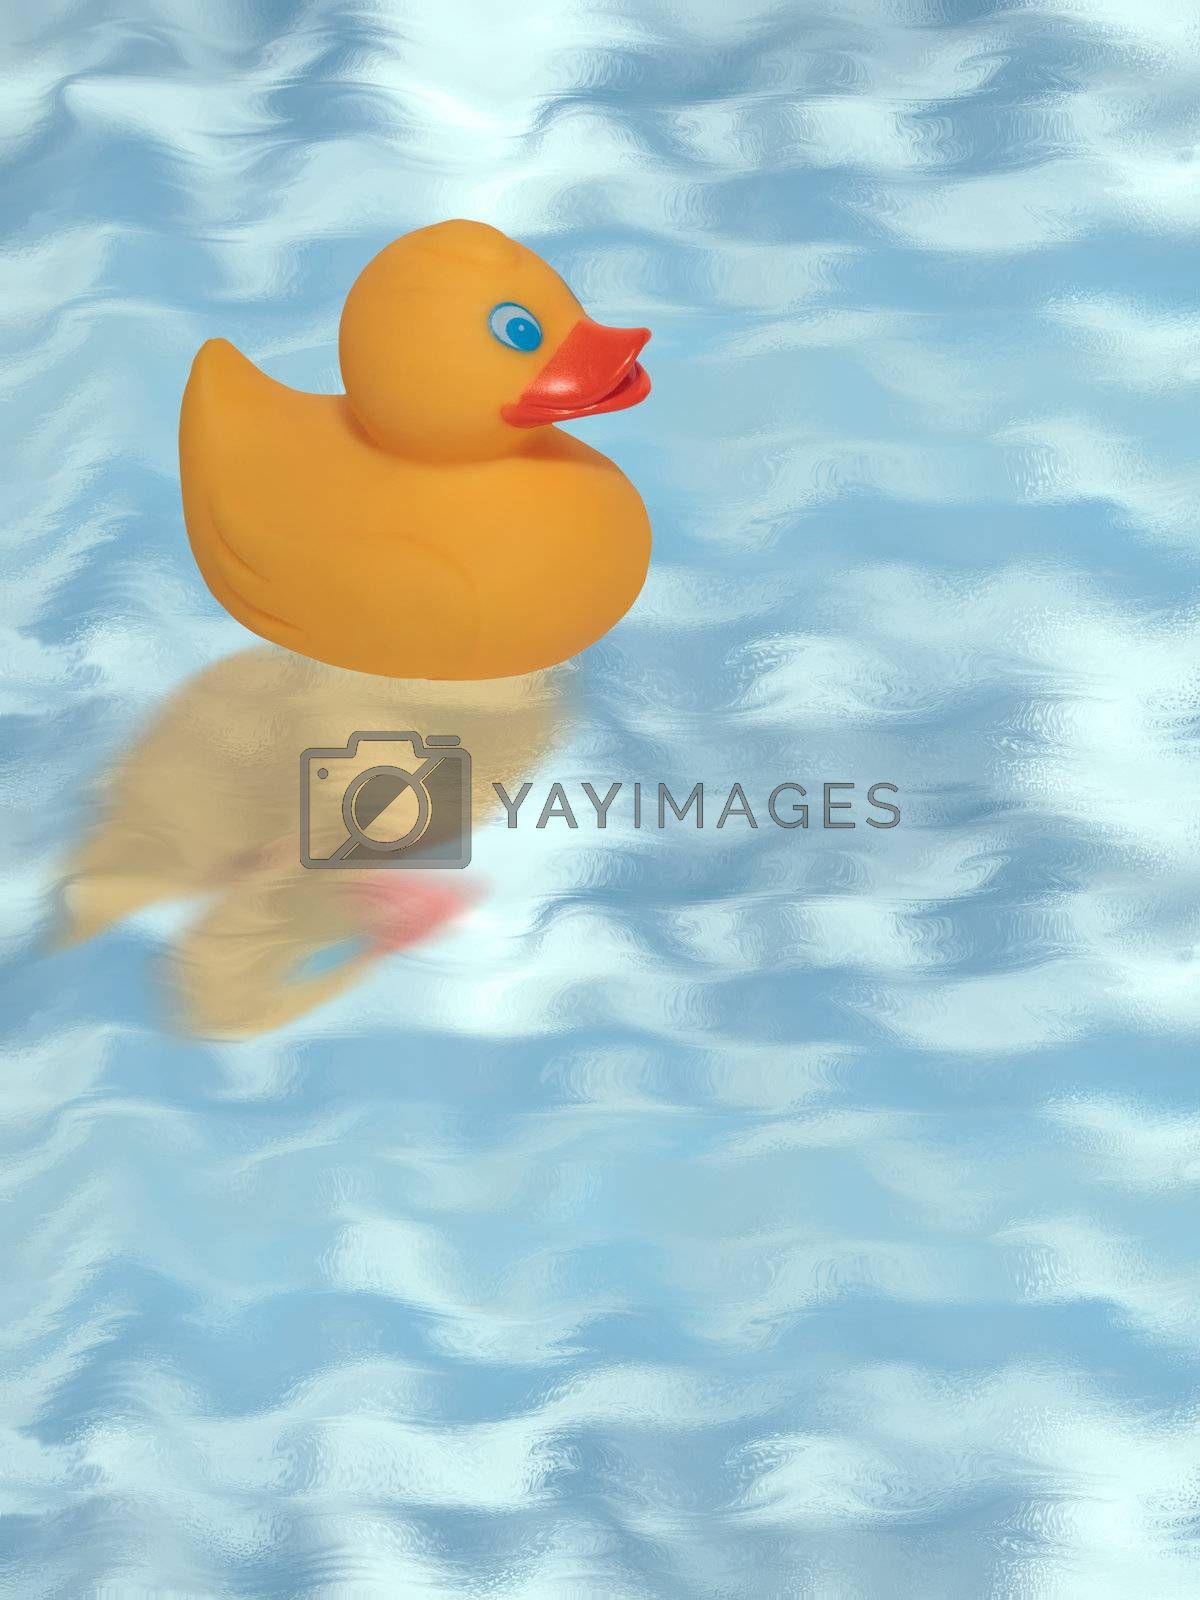 a rubber duck swimming in the blue water with copy space.includes a clipping path.